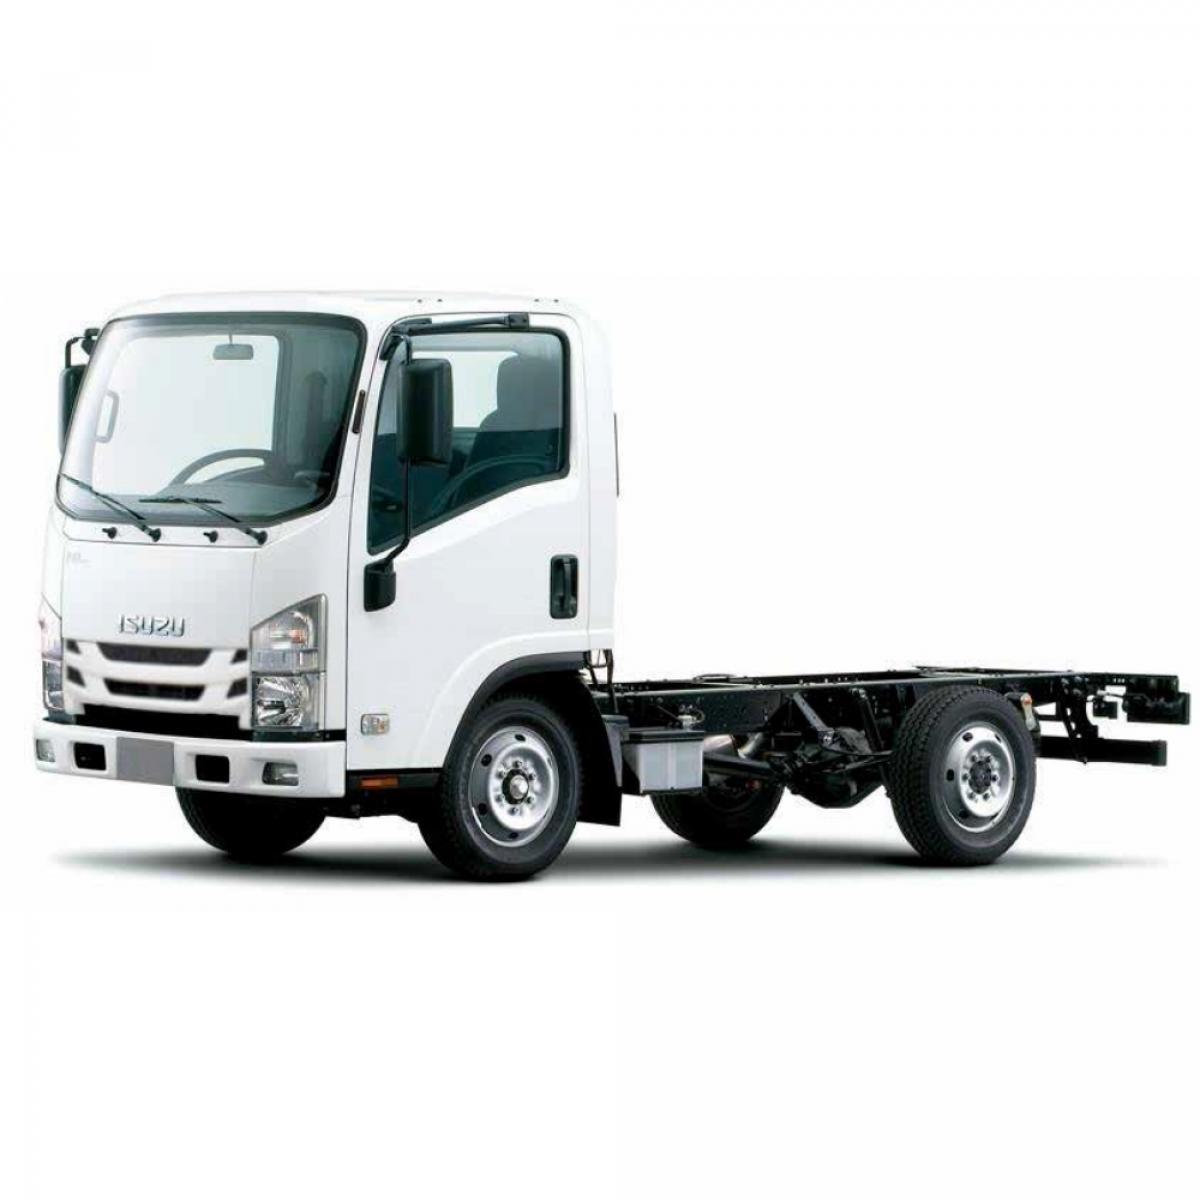 Isuzu M21 Single Tire Design